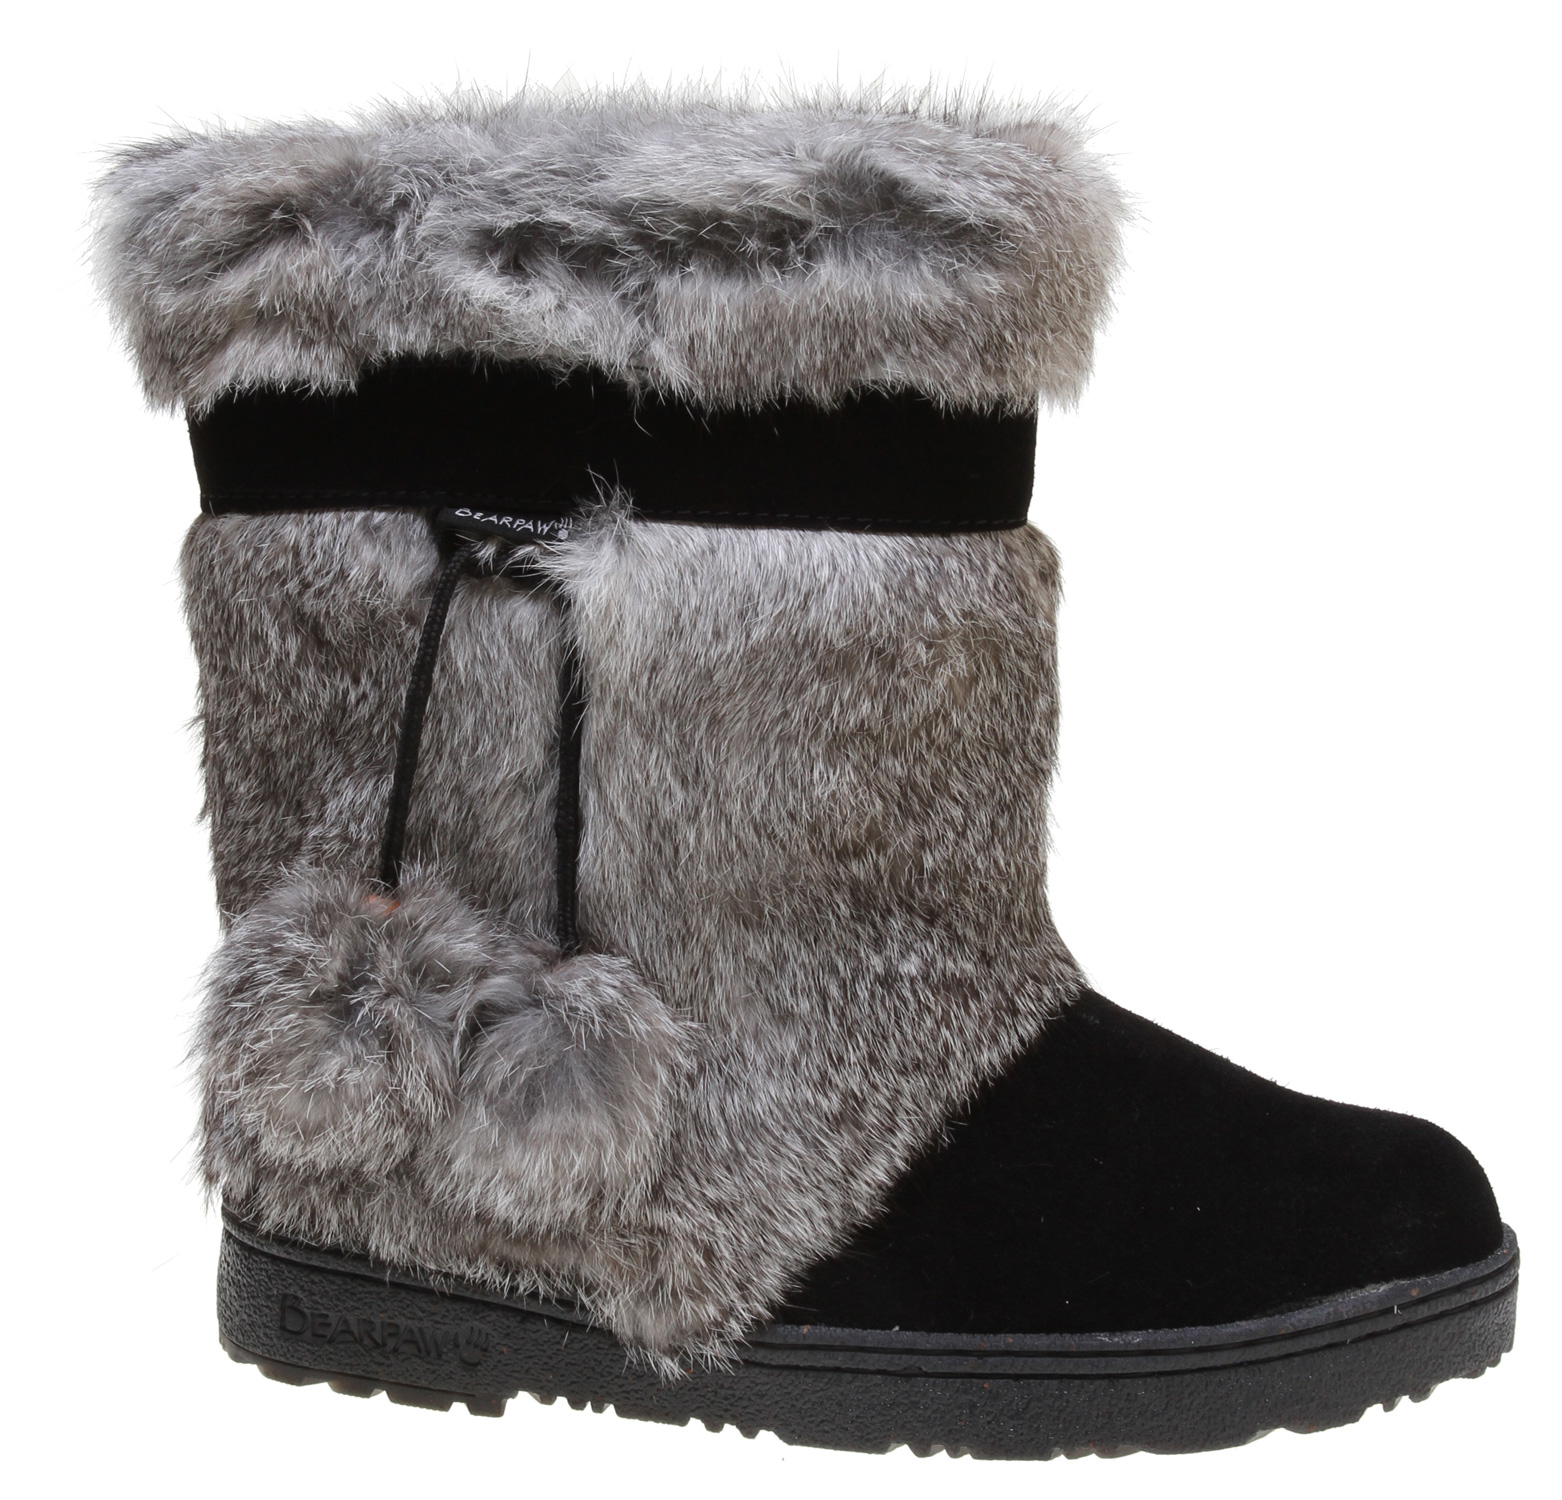 The Tama II is sure to give you that extra flare, turn heads and make a statement when you wear these fluffy comforts out on the town. Look no further for groundbreaking comfort, warmth, and a fashion statement. Key Features of the Bearpaw Tama II Casual Boots: Cow suede vamp Rabbit fur Branded trim and teis with pom poms 100% superwash merino wool lining Sheepskin footbed Metal heel logo - $129.98